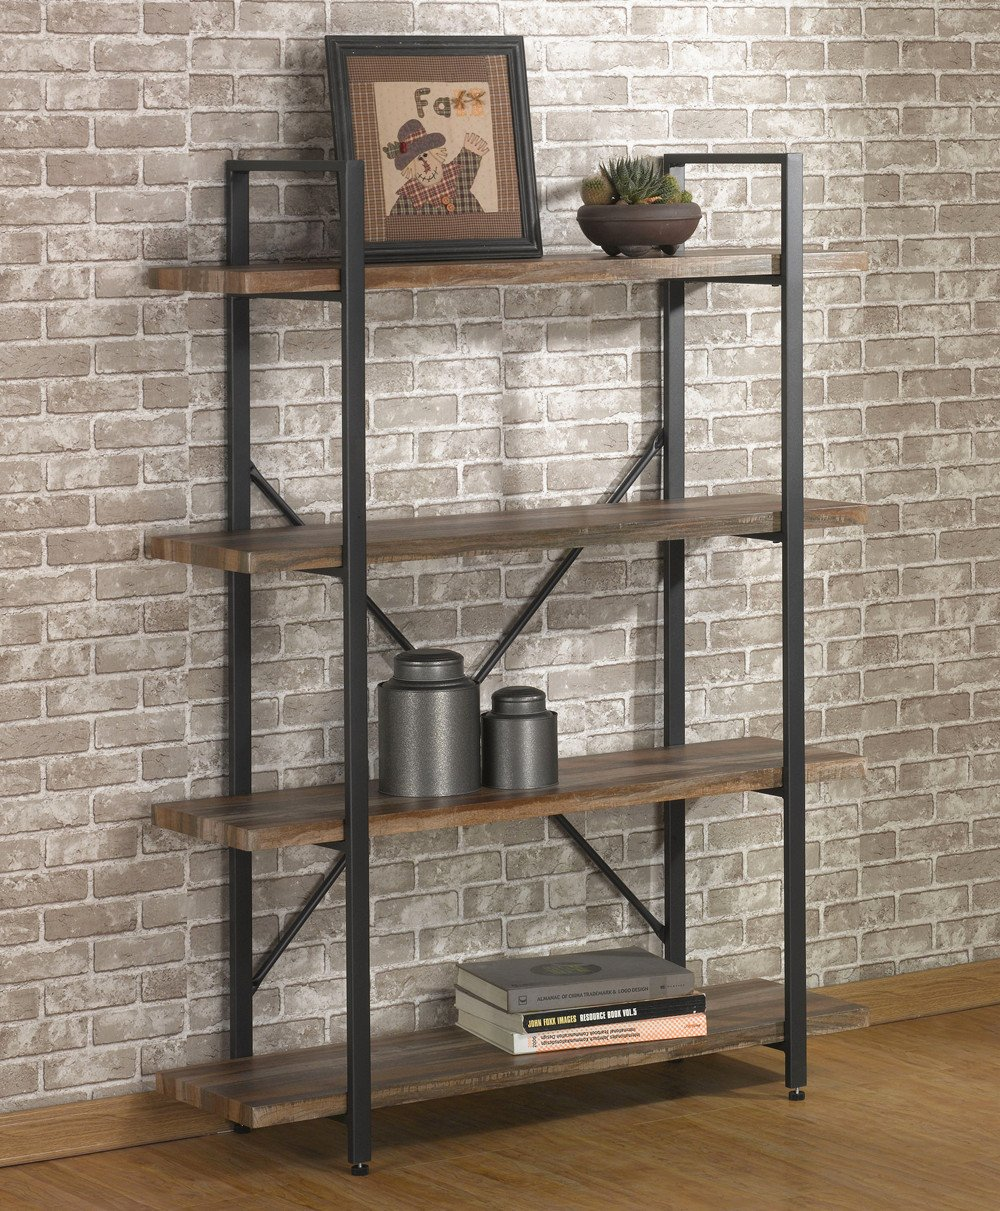 O&k Furniture 4 Tier Bookcases And Book Shelves